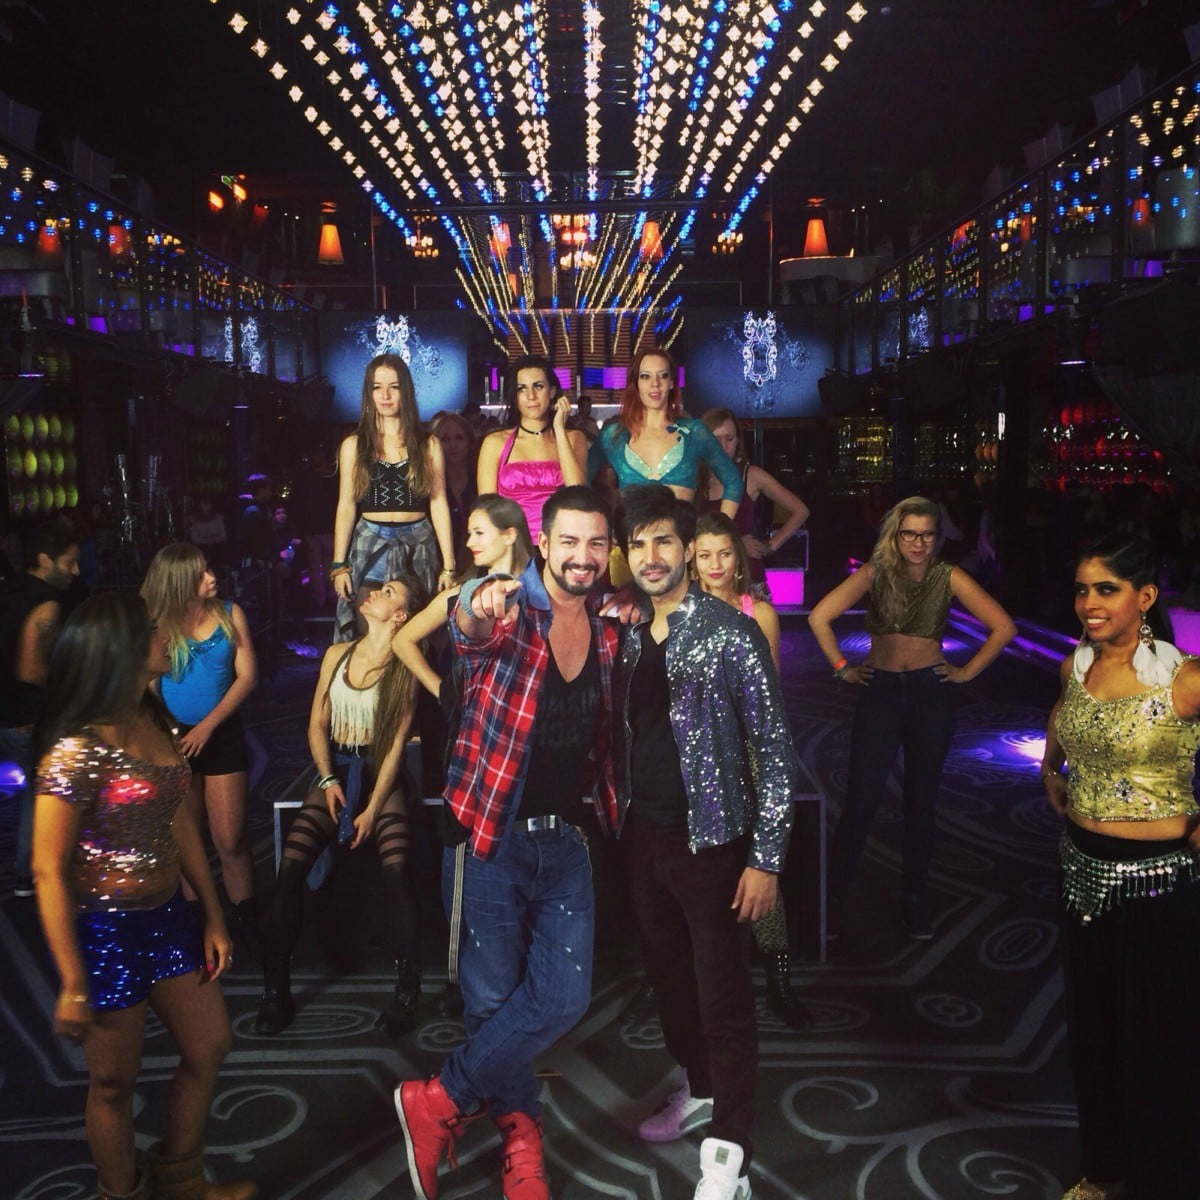 In addition to singing, Adeel may be busting a move or two in the film